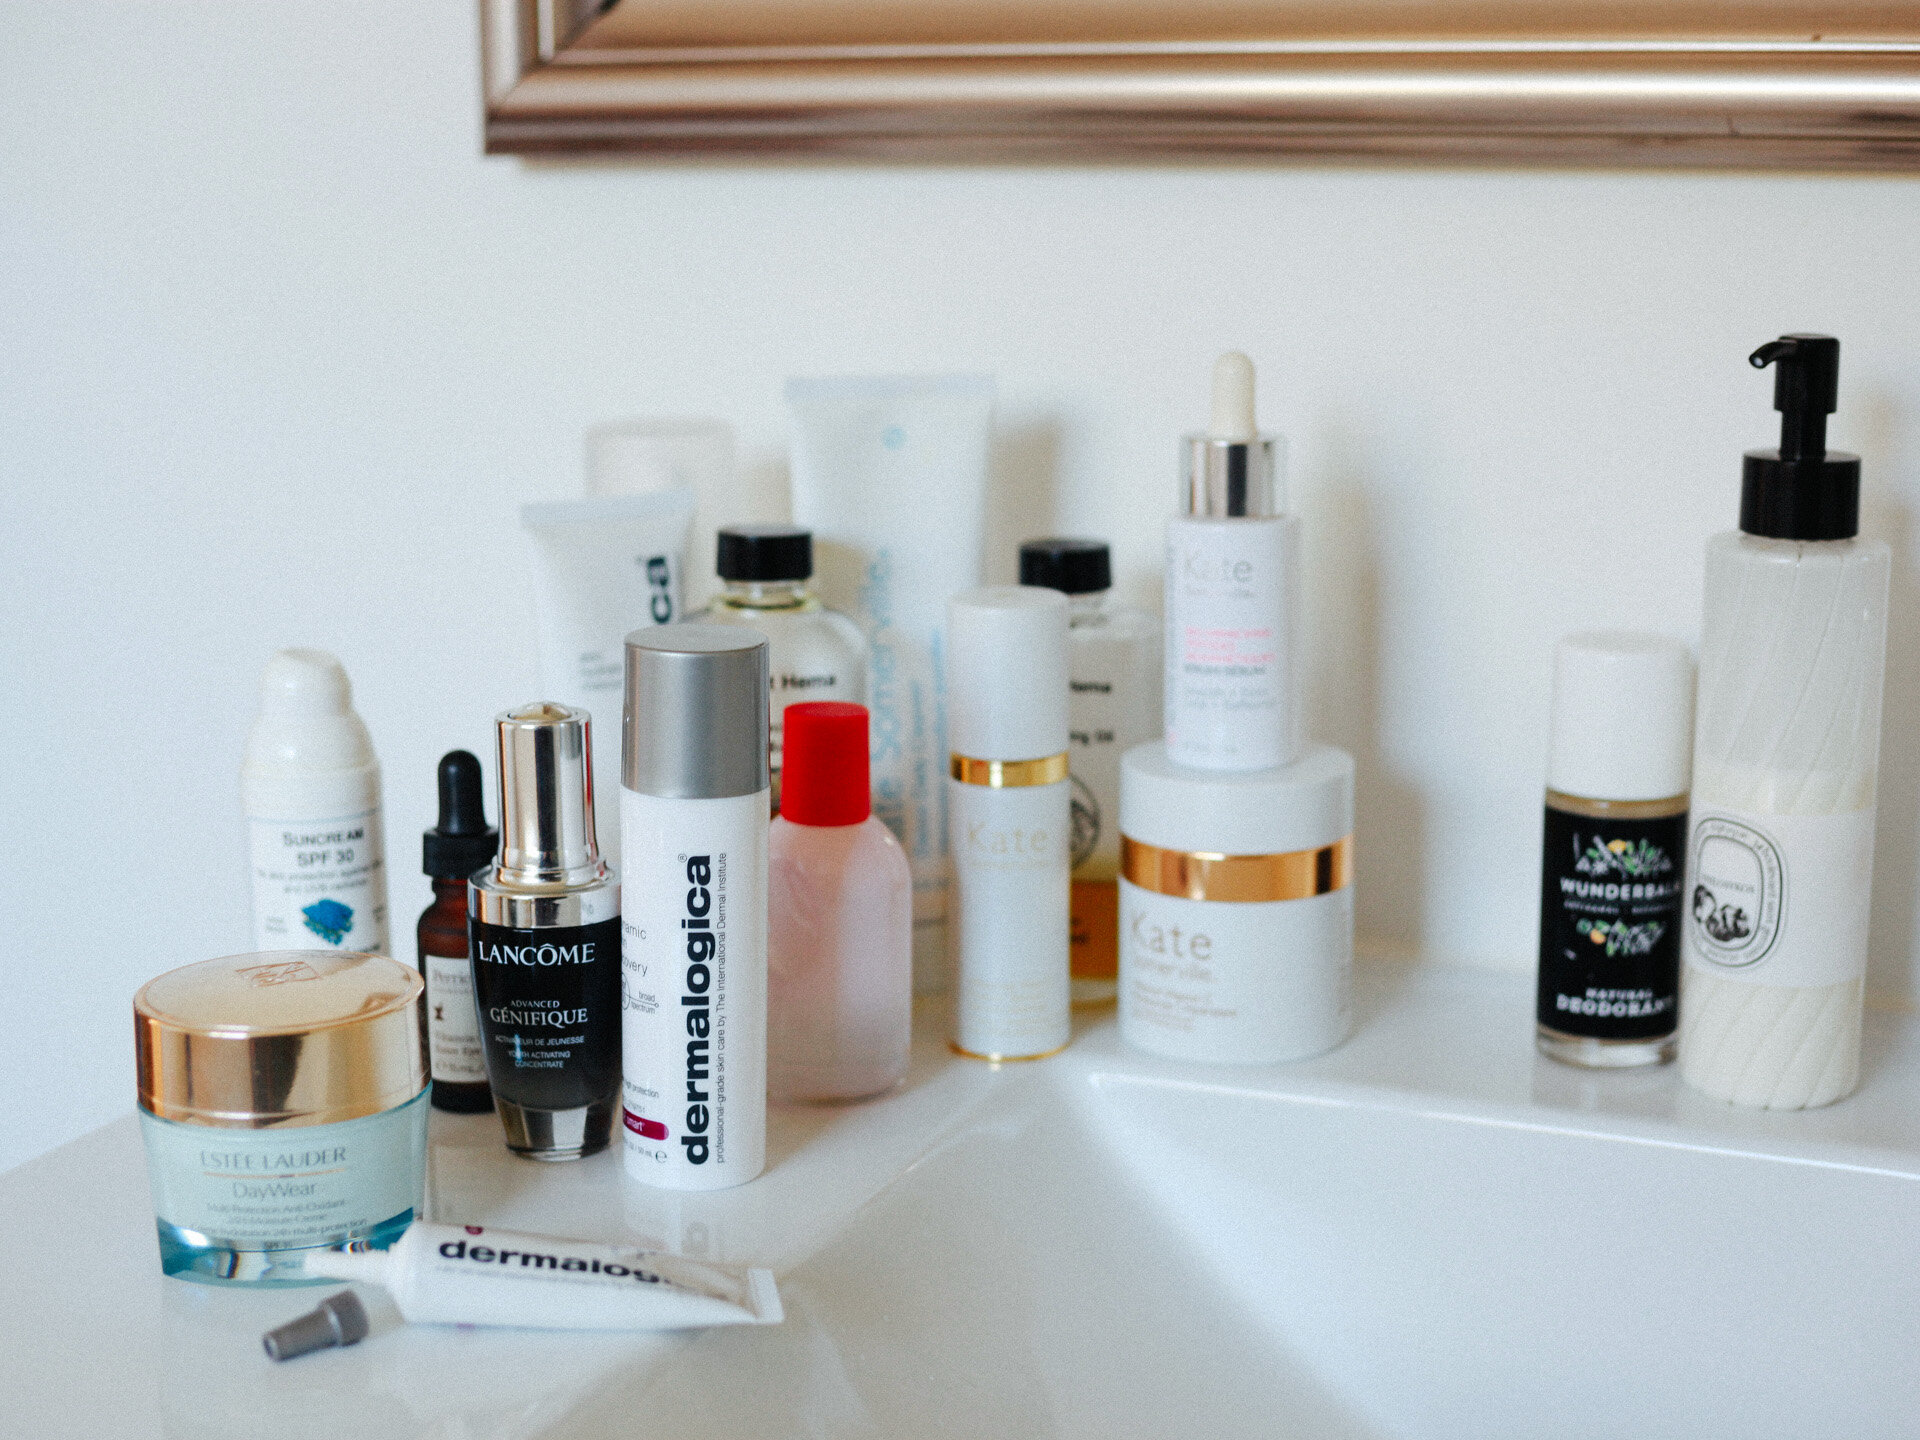 The_Residents_Lucy_Revill_Skincare_Lancome_Dermalogica-15.jpg